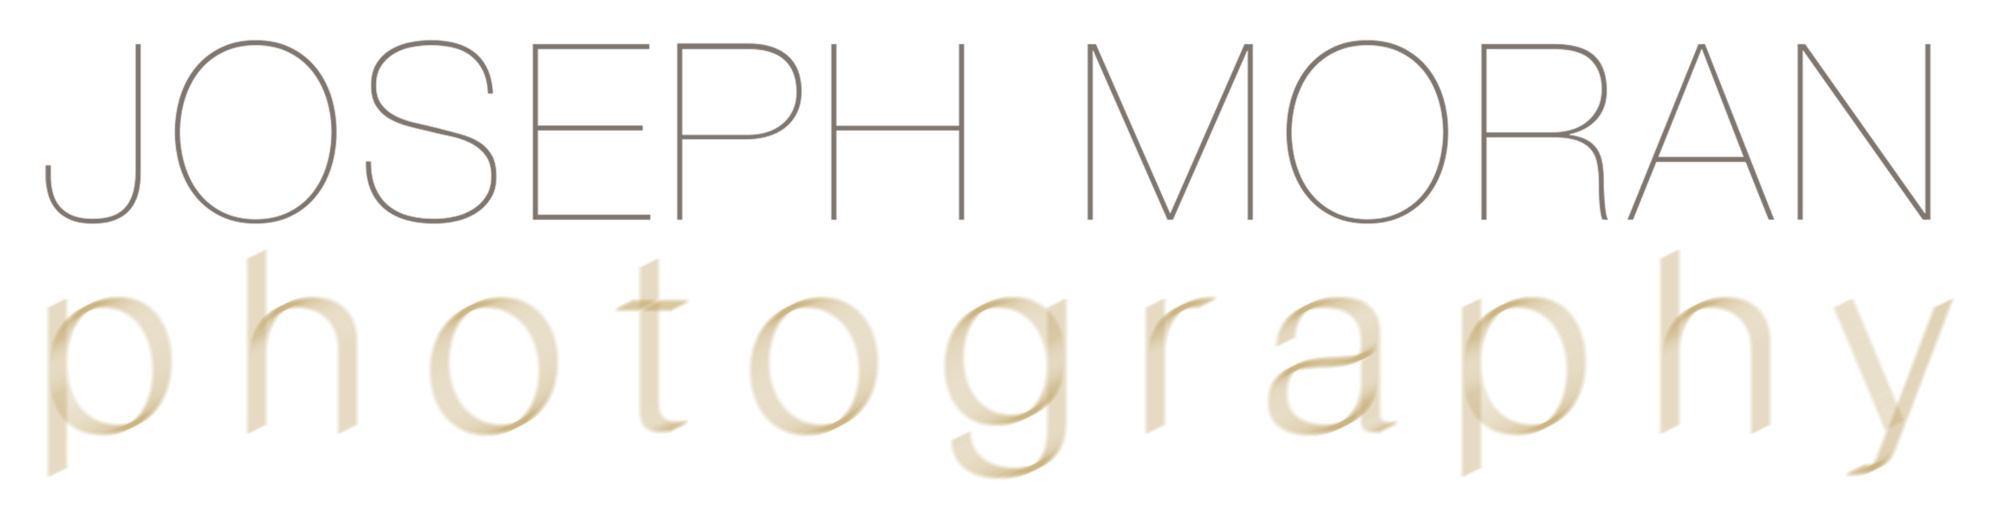 Joseph Moran Photography, Inc., New York, NY